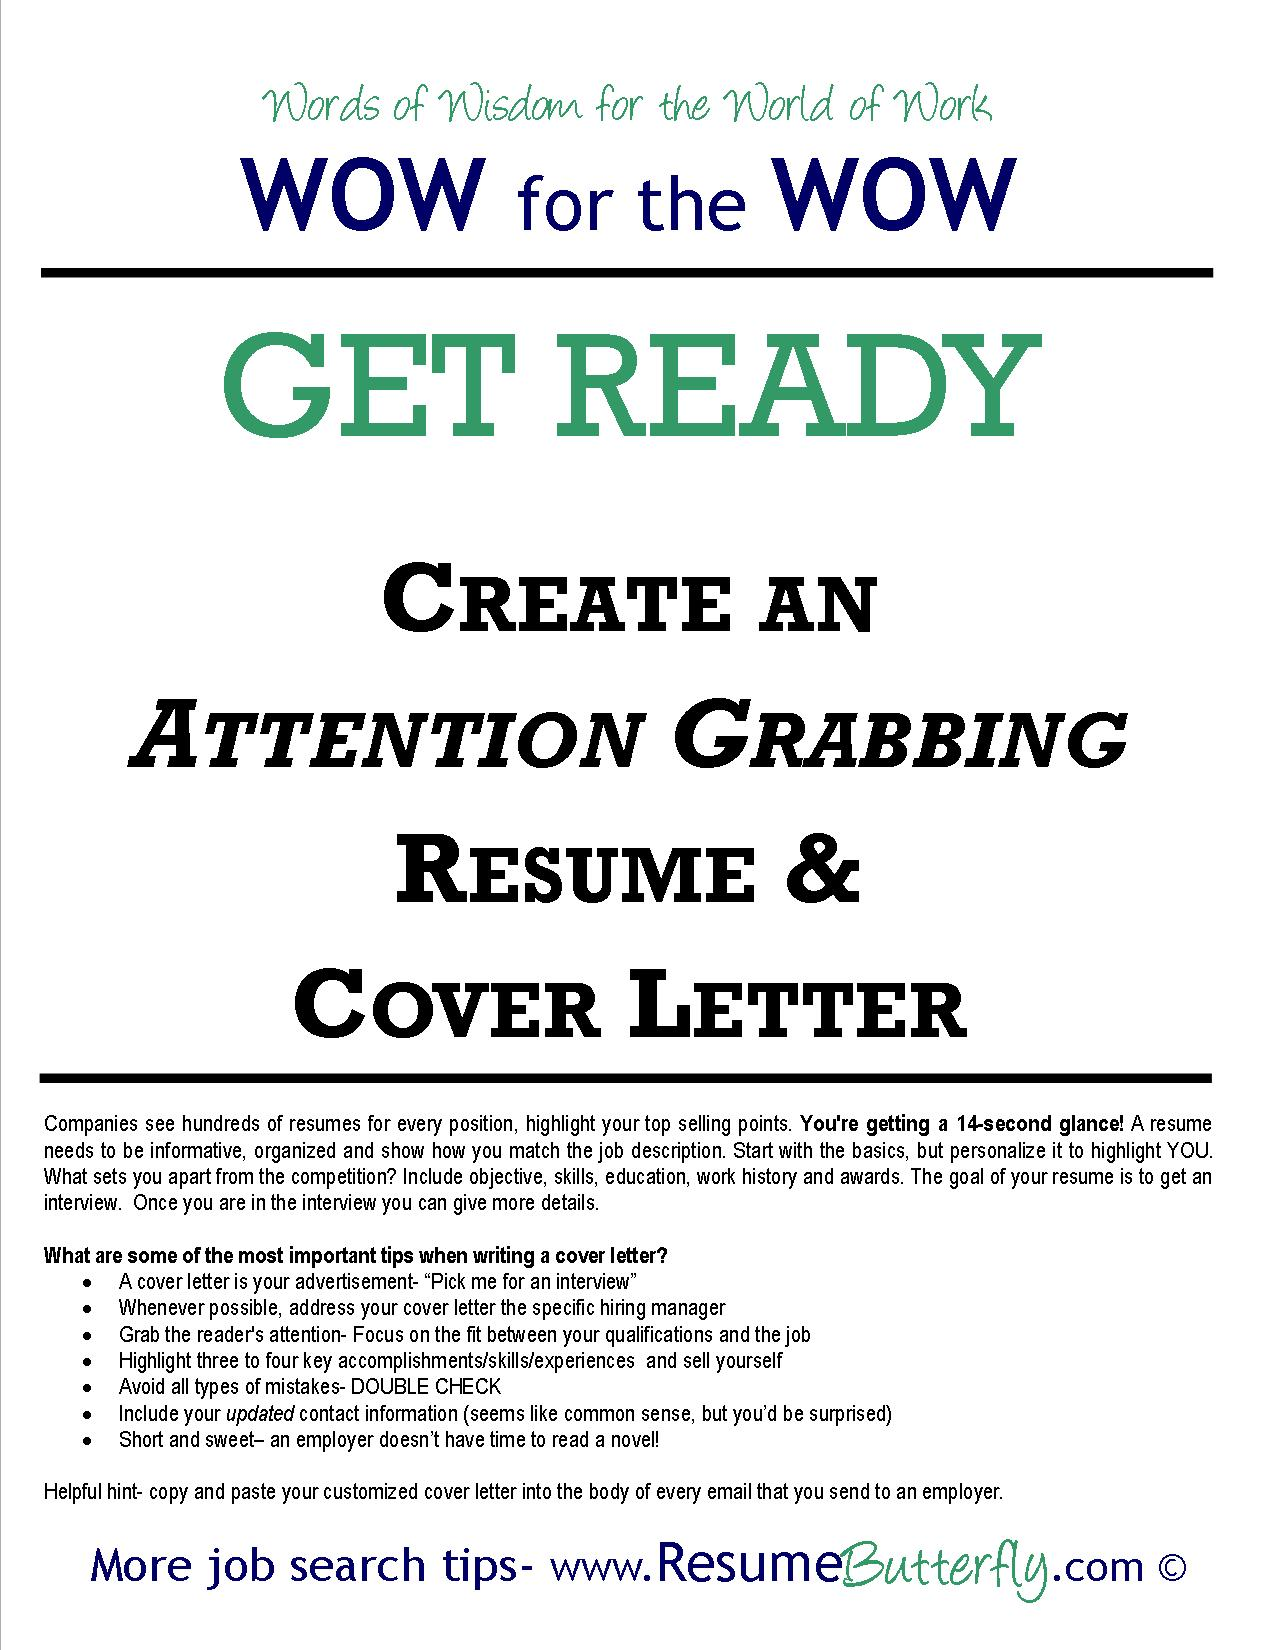 How To Write A Cover Letter 7 Tips To Grab Attention And Create An Attention Grabbing Resume And Cover Letter